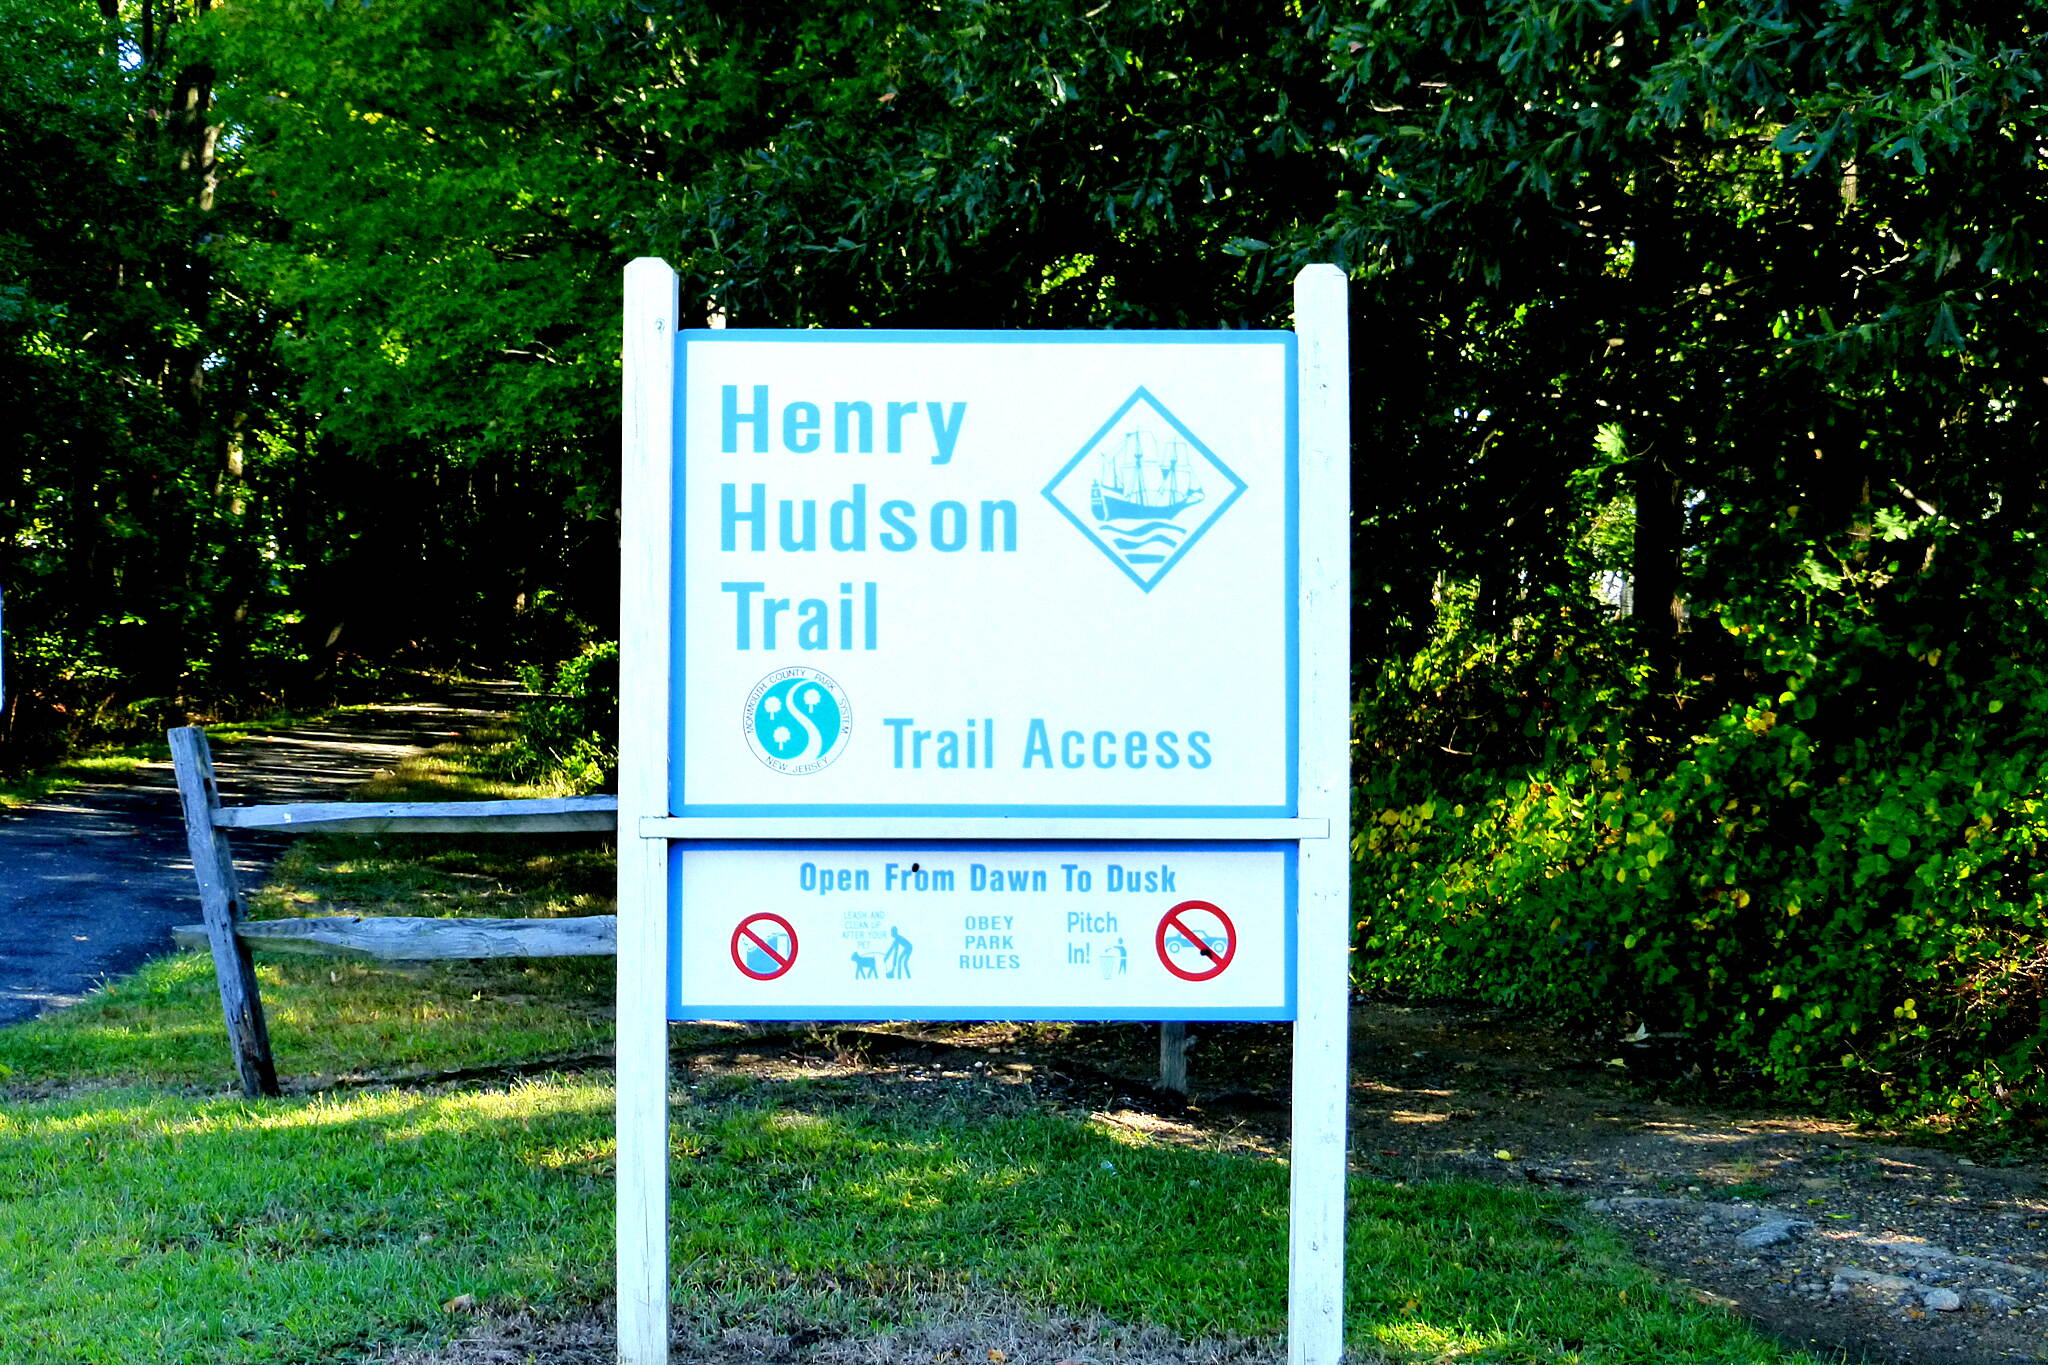 Henry Hudson Trail  Aberdeen Trailhead Aberdeen Trailhead of the northern Henry Hudson Trail.